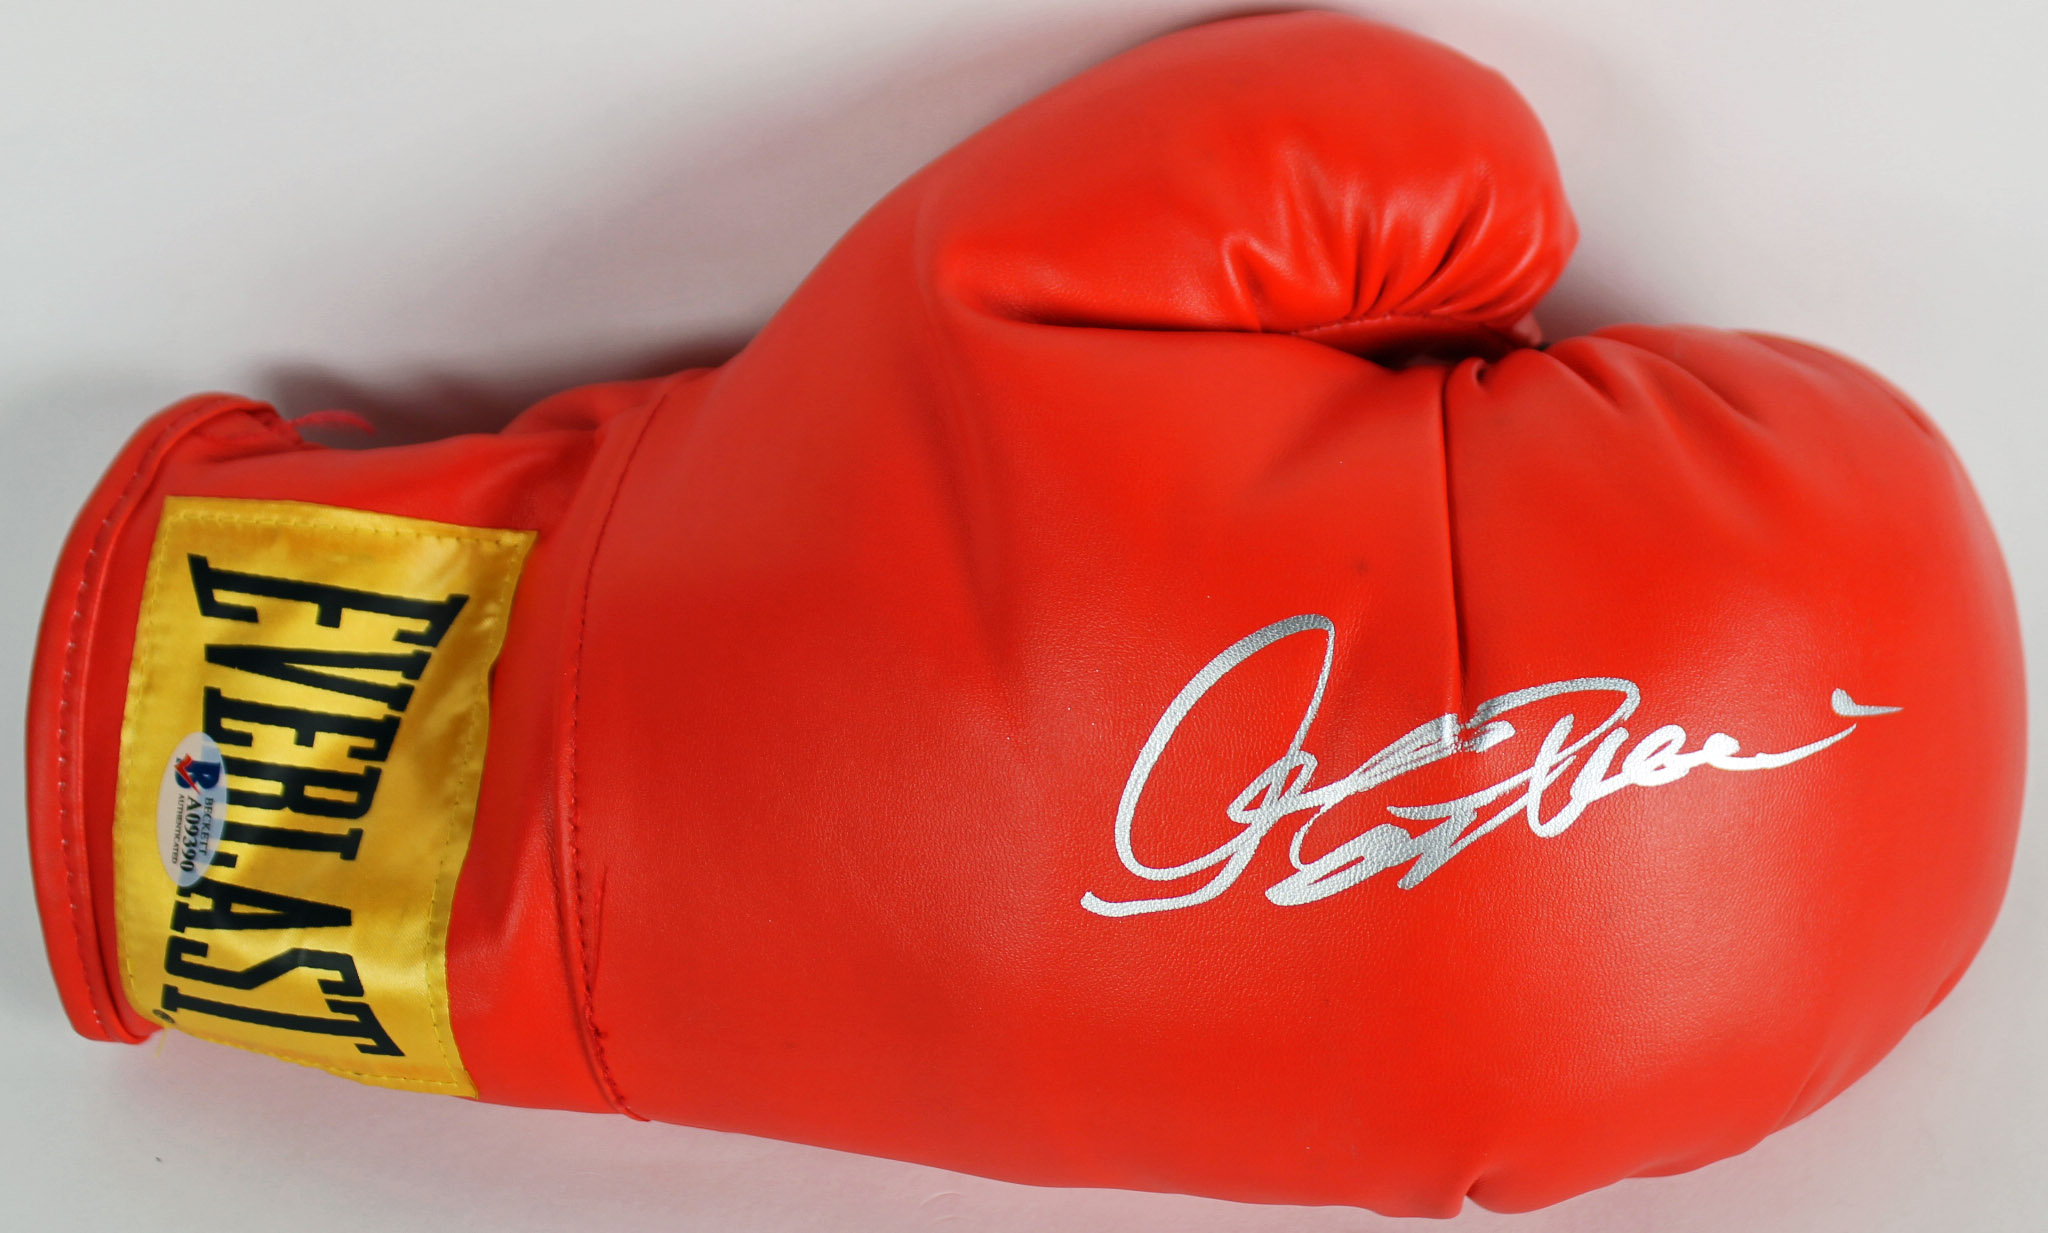 Clint Eastwood Million Dollar Baby Signed Everlast Boxing Glove BAS #A09390